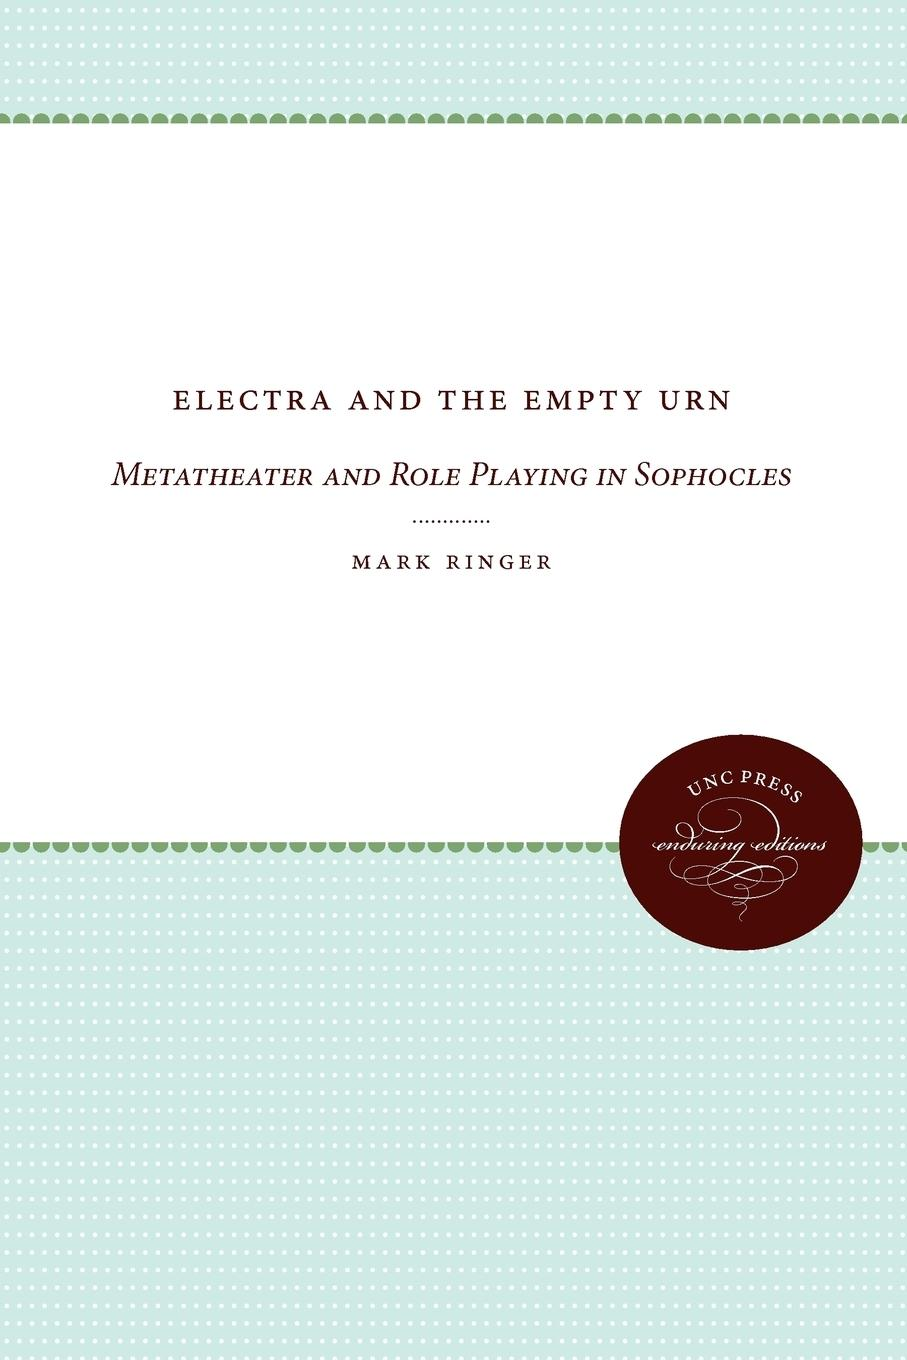 Electra and the Empty Urn - Ringer, Mark